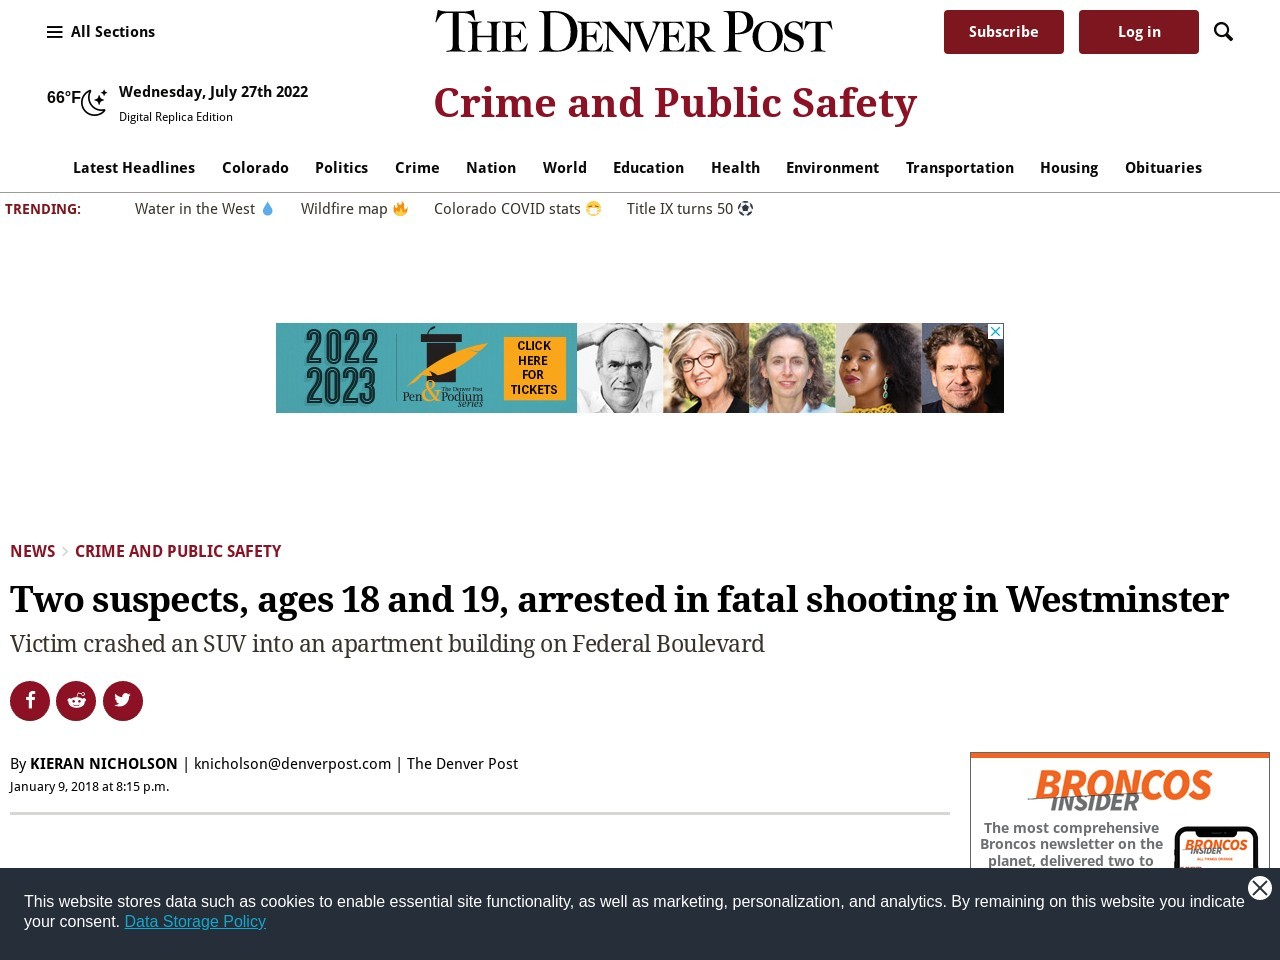 Two suspects, ages 18 and 19, arrested in fatal shooting in Westminster